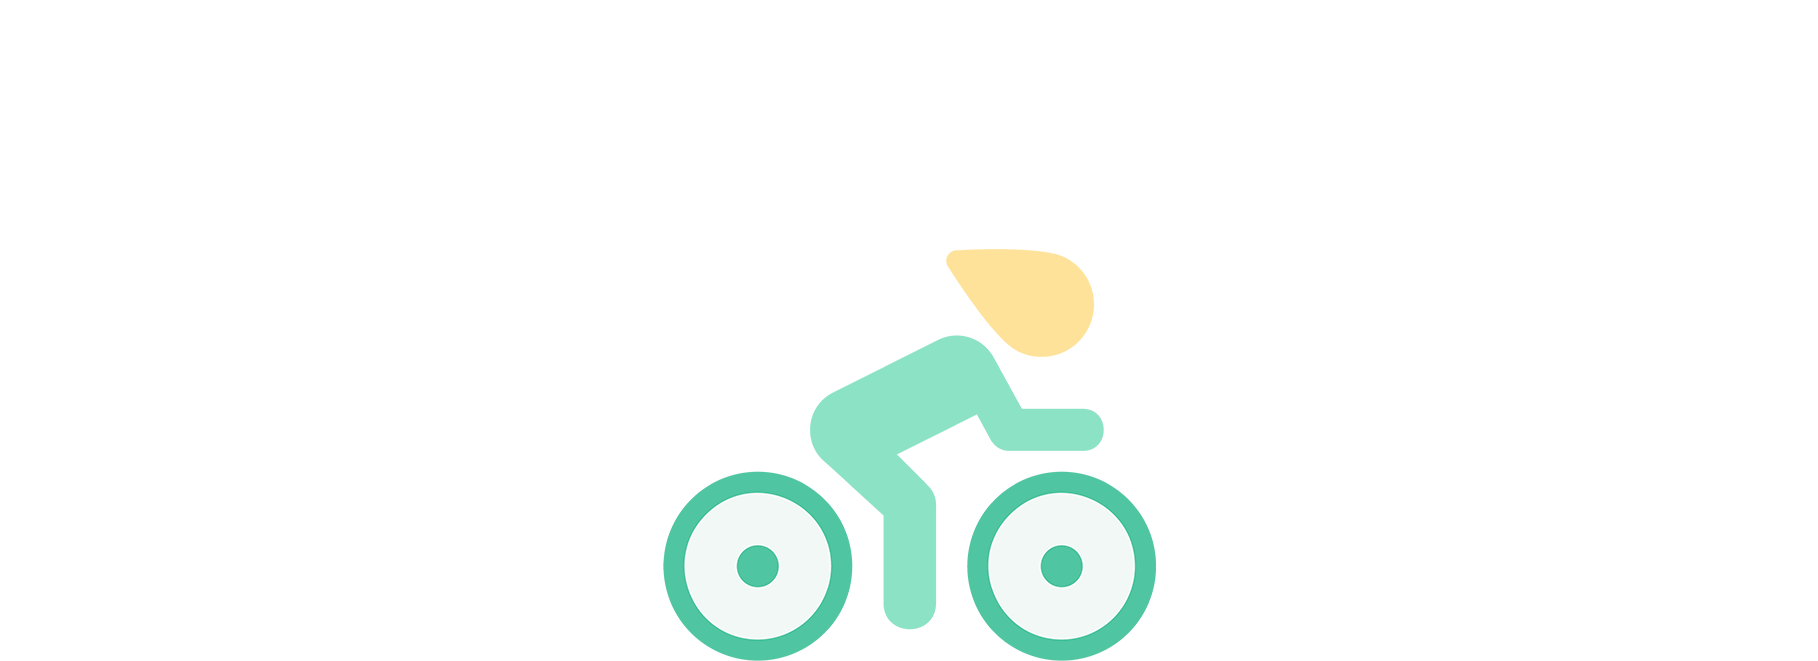 cycling-track-colored-48.png